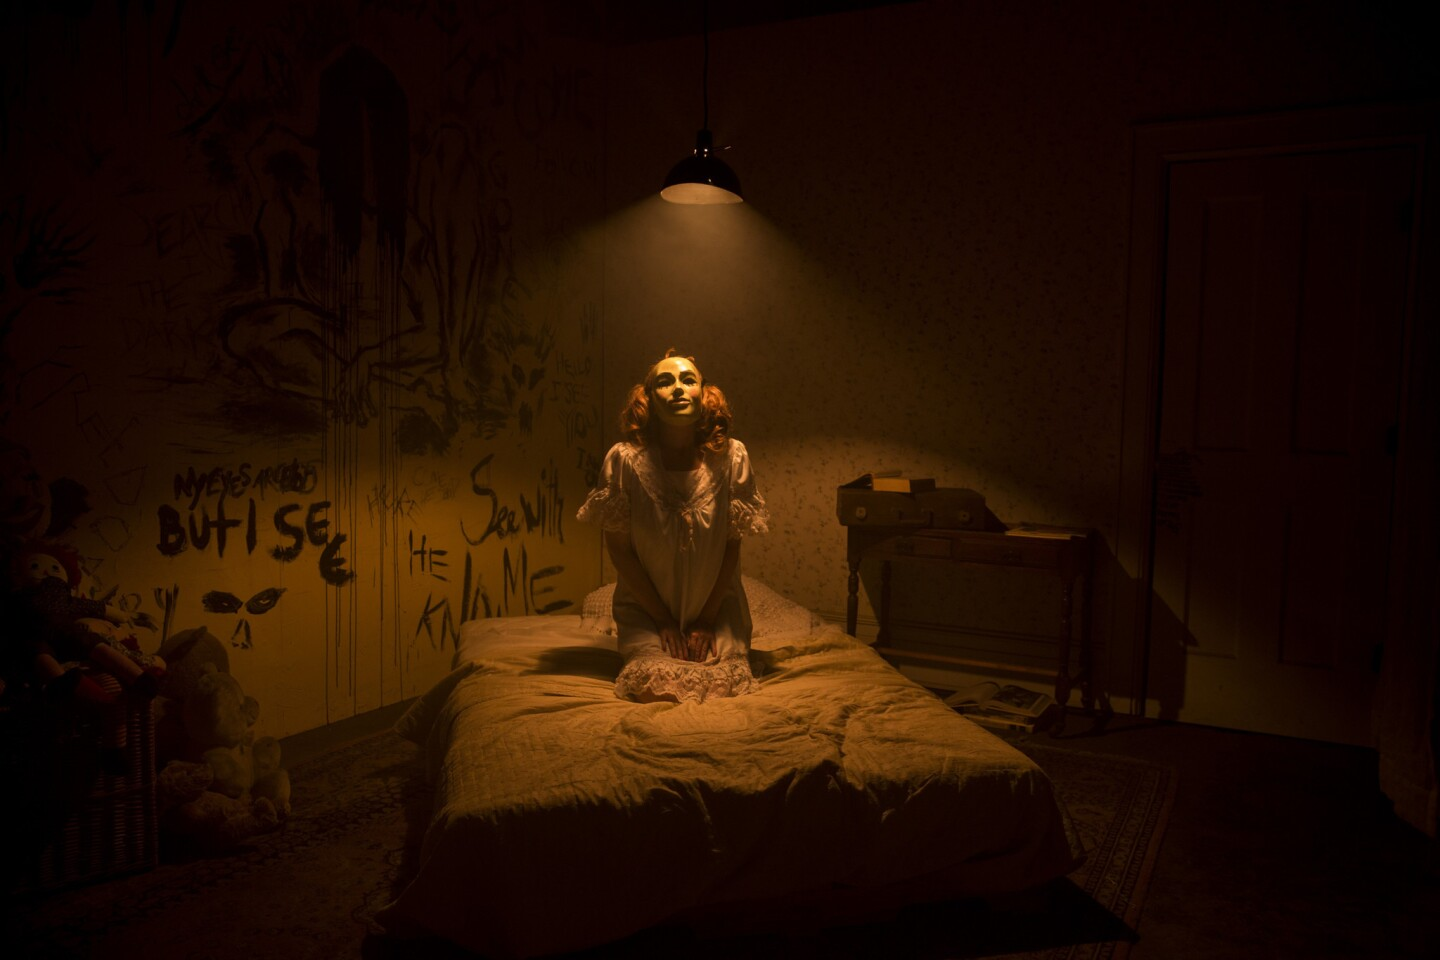 Actress Misha Reeves occupies one of several themed rooms inside CreepLA, a haunted house experience set up in a warehouse in the Glassell Park neighborhood.